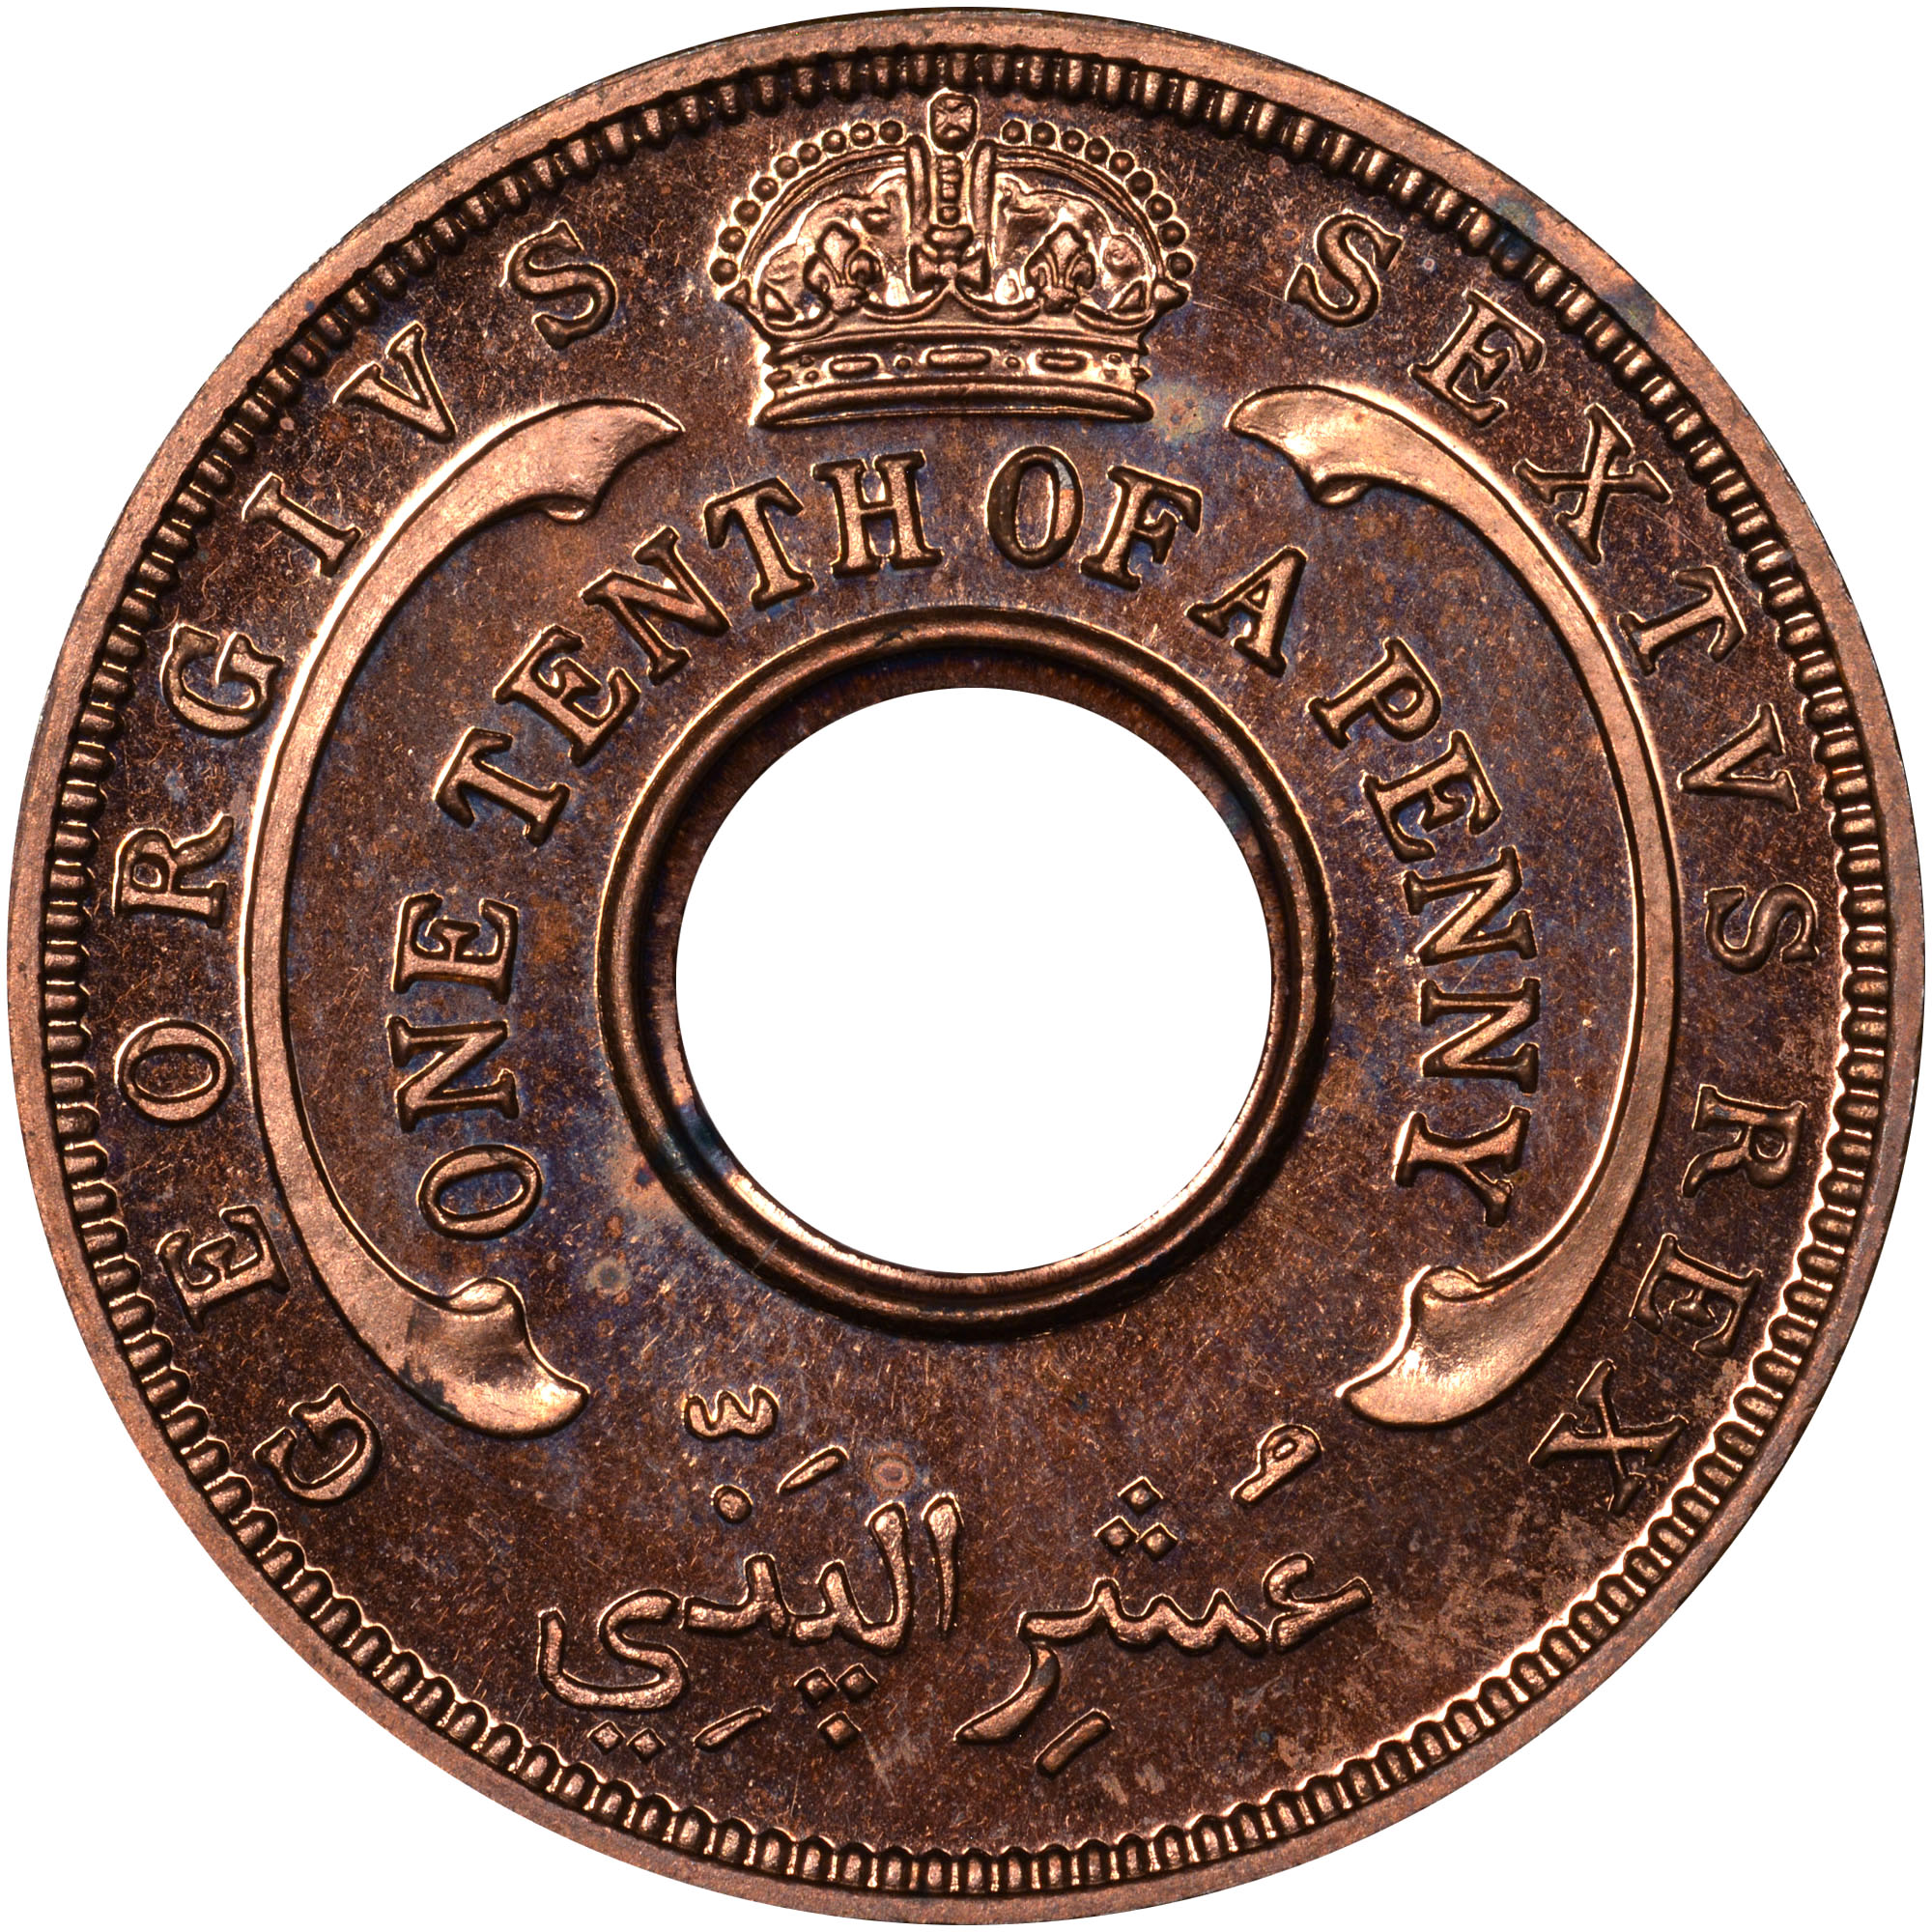 1952 British West Africa 1/10 Penny obverse